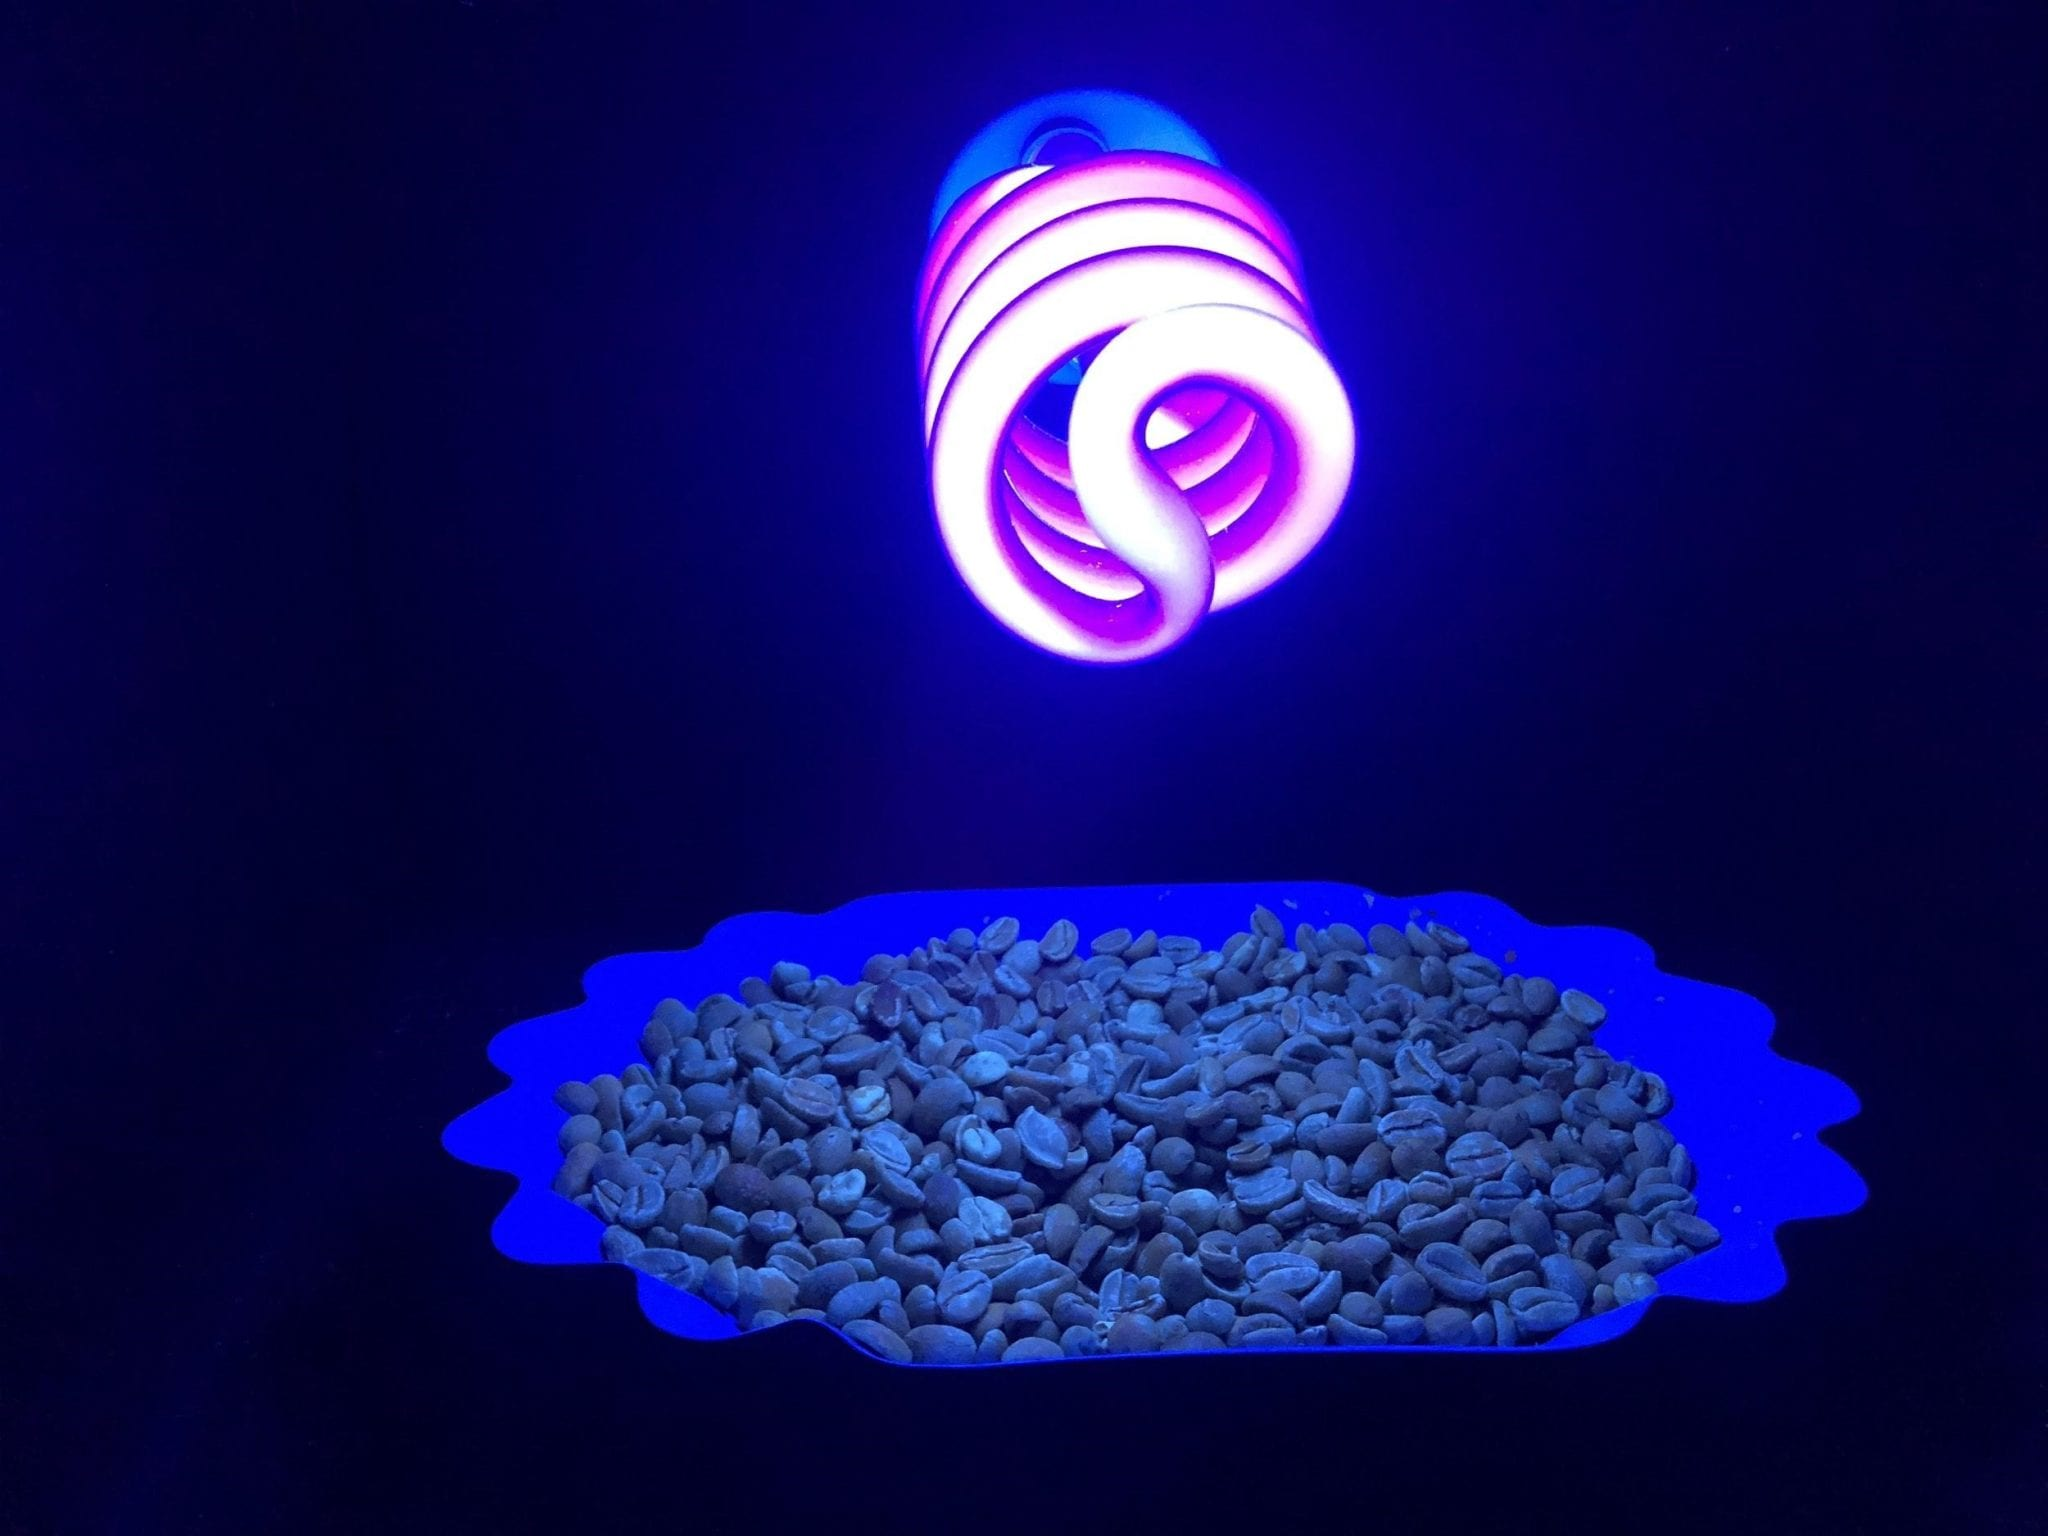 Quality control of green coffee beans using a UV light